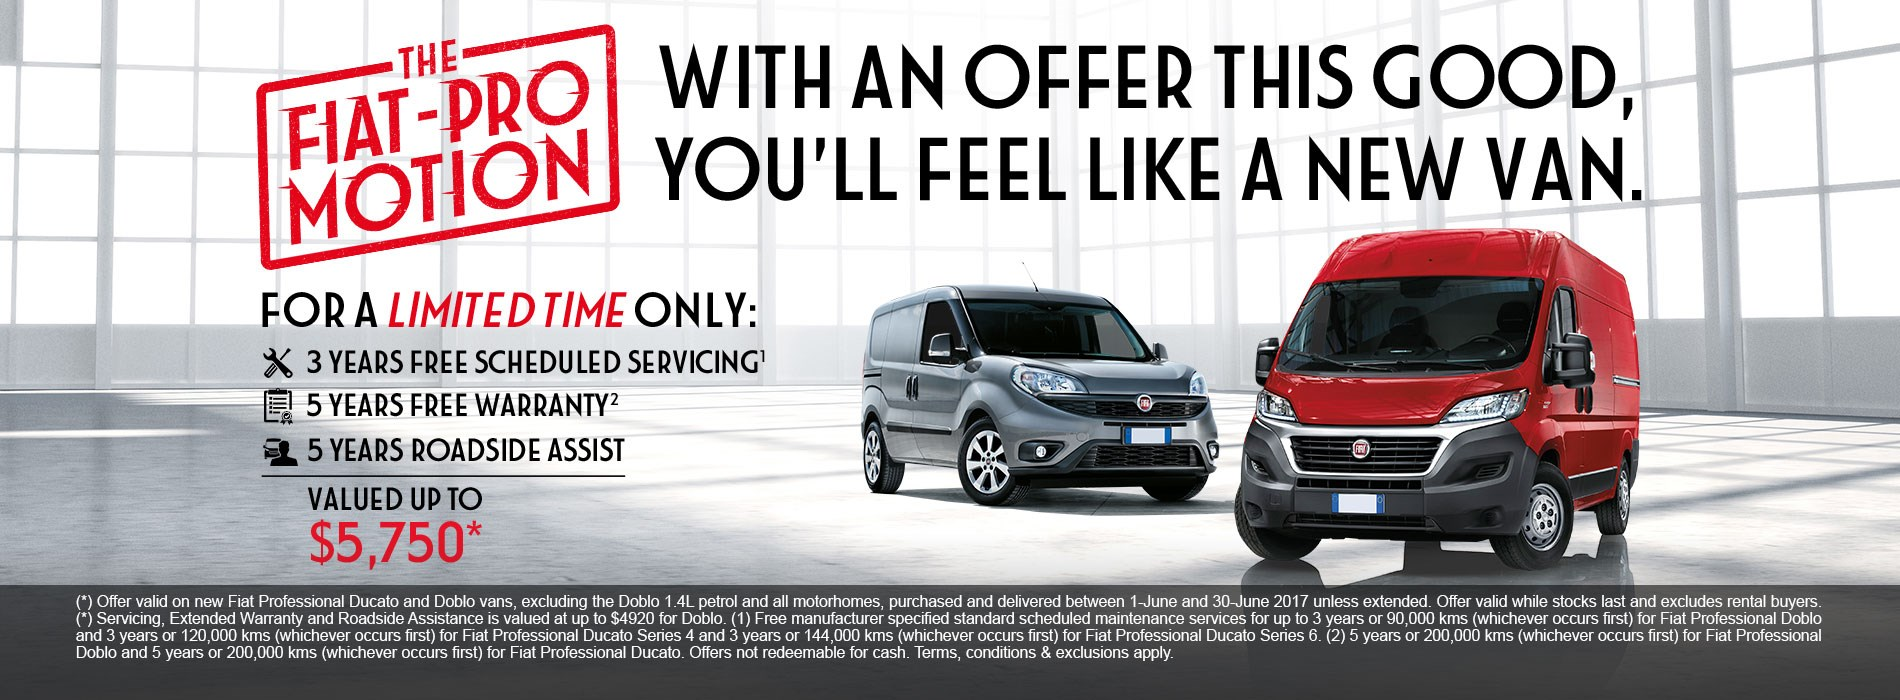 Fiat Pro Motion Offer